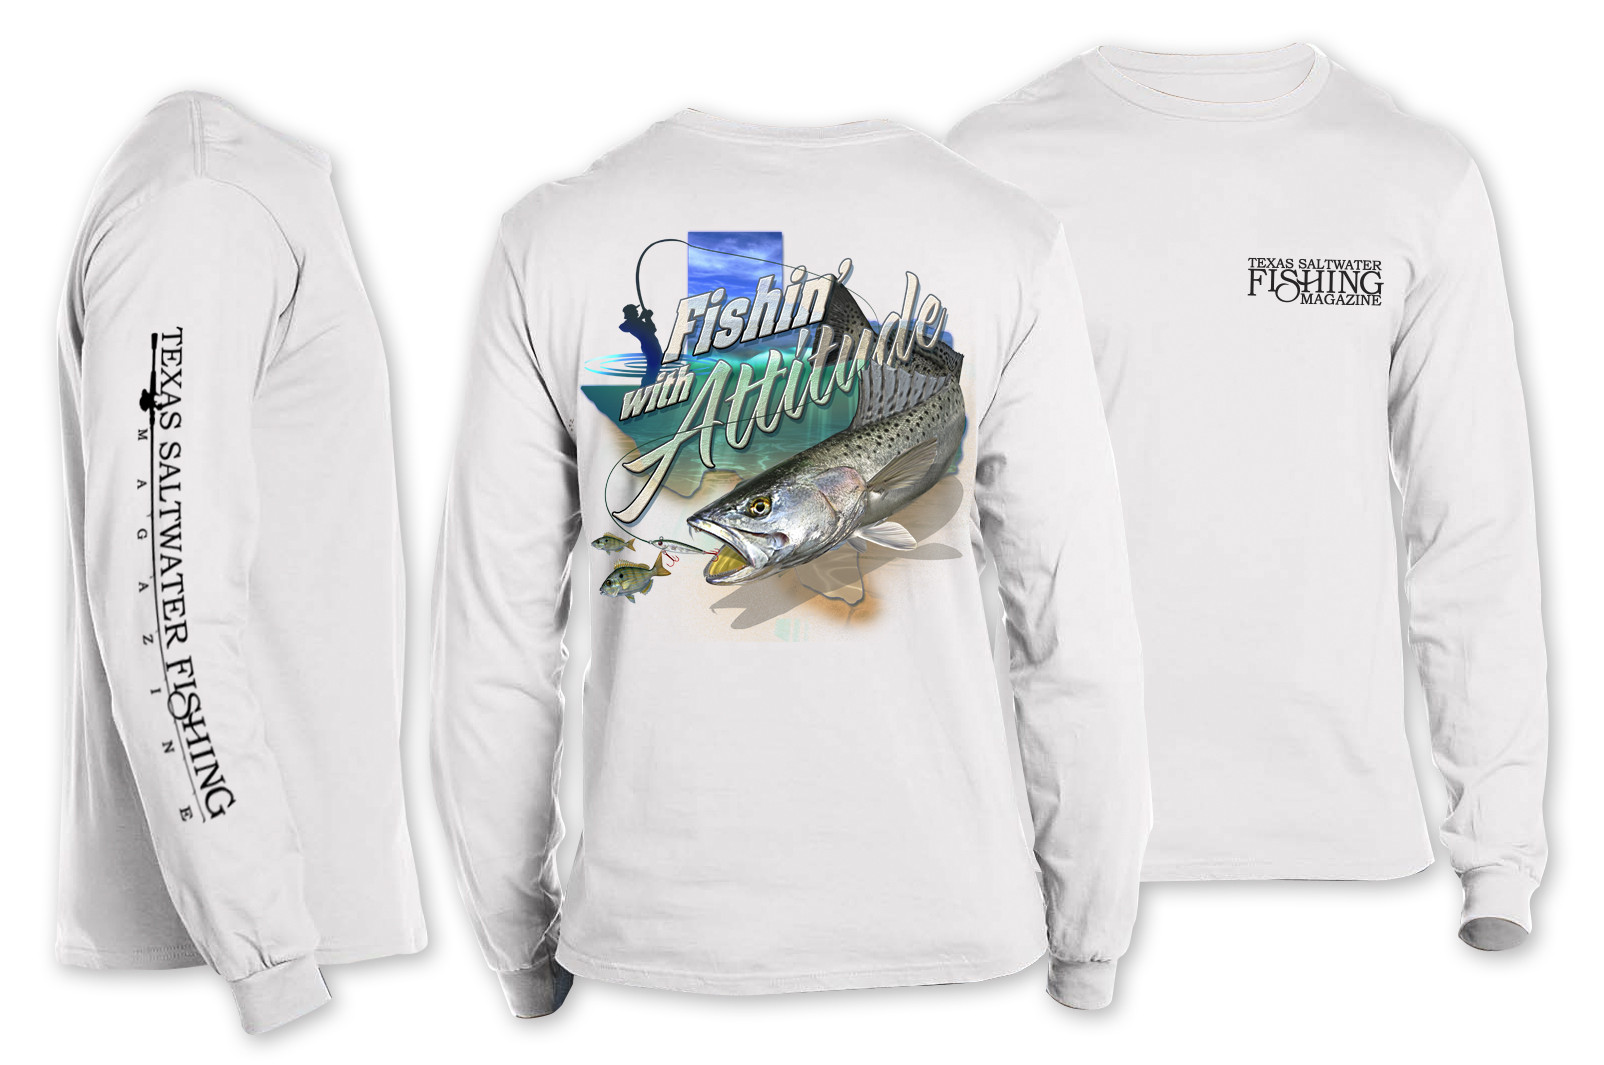 Fishin' with Attitude Long Sleeve T-shirt